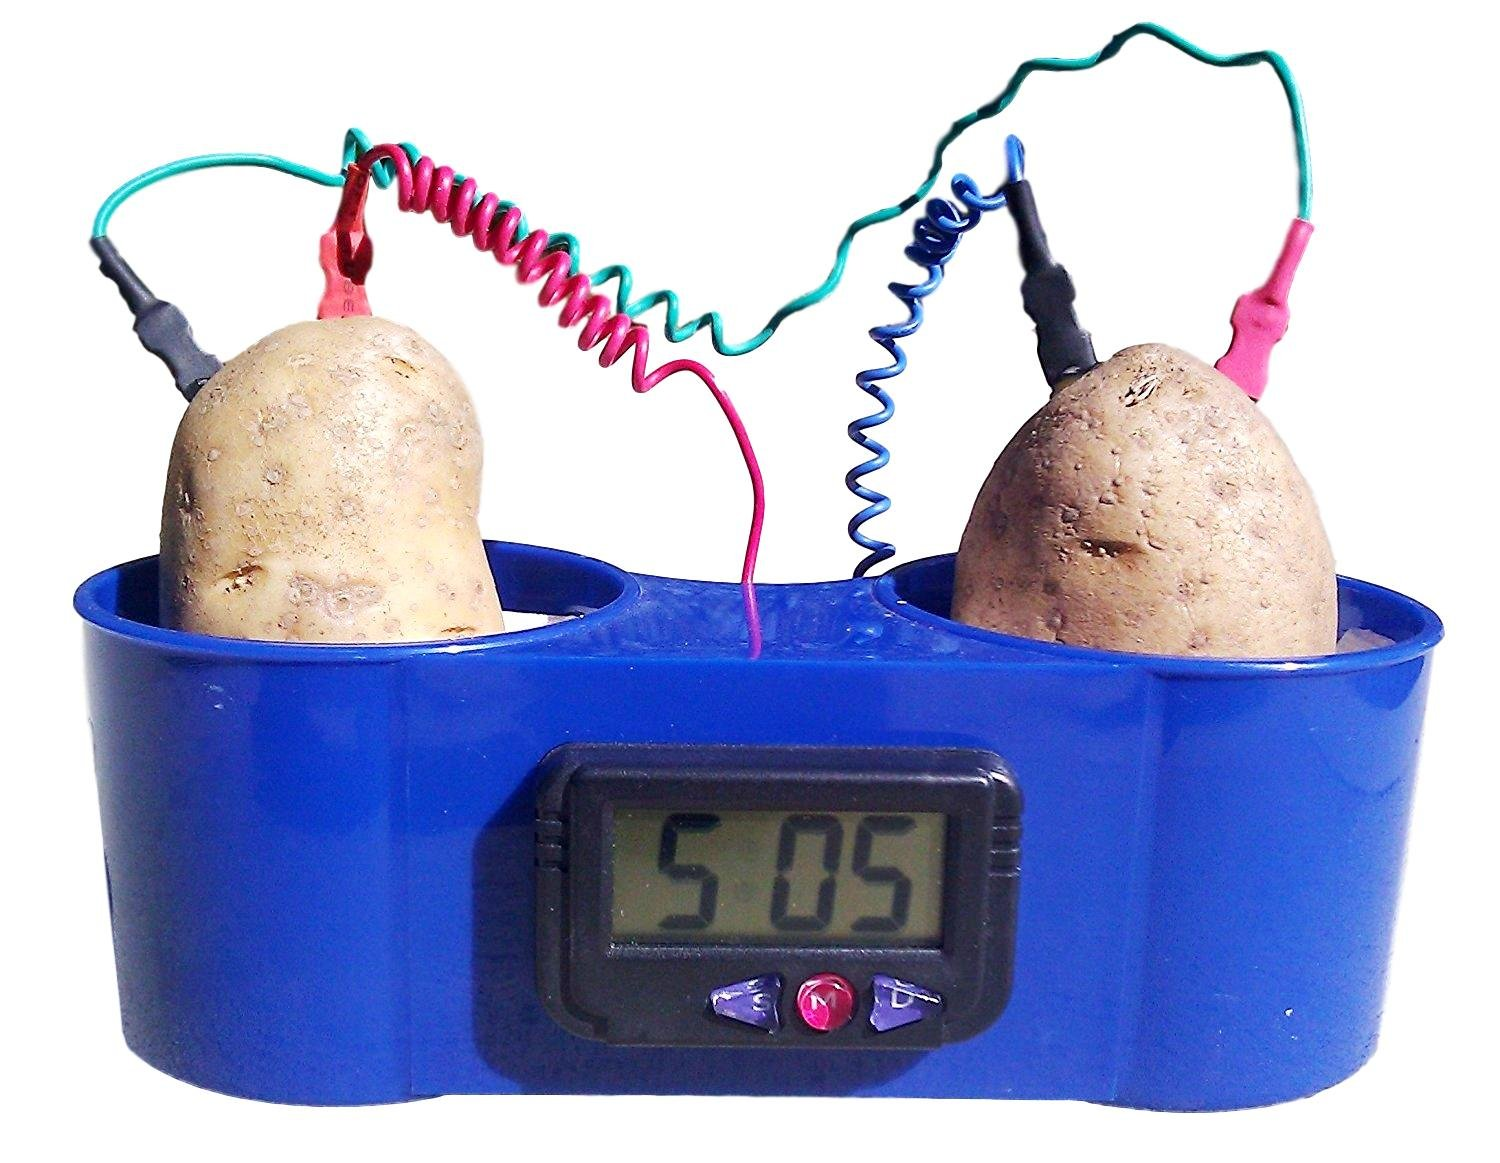 Potato Clock with No Mess Holder, Fruit Clock by Sci-Supply